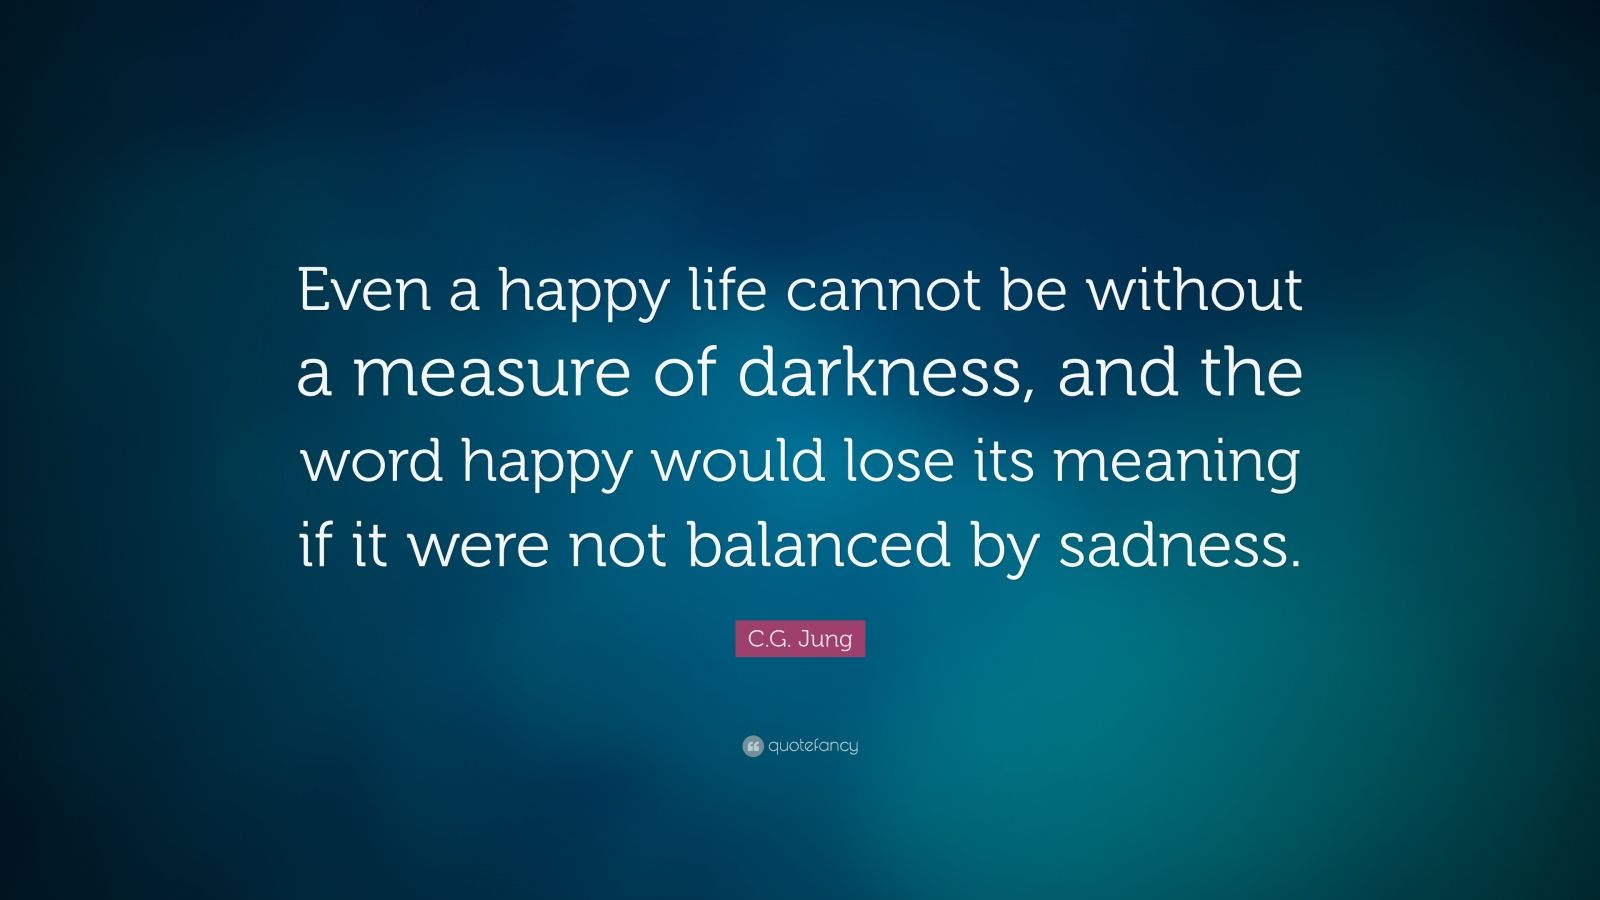 Buddha Quotes With Wallpaper C G Jung Quote Even A Happy Life Cannot Be Without A